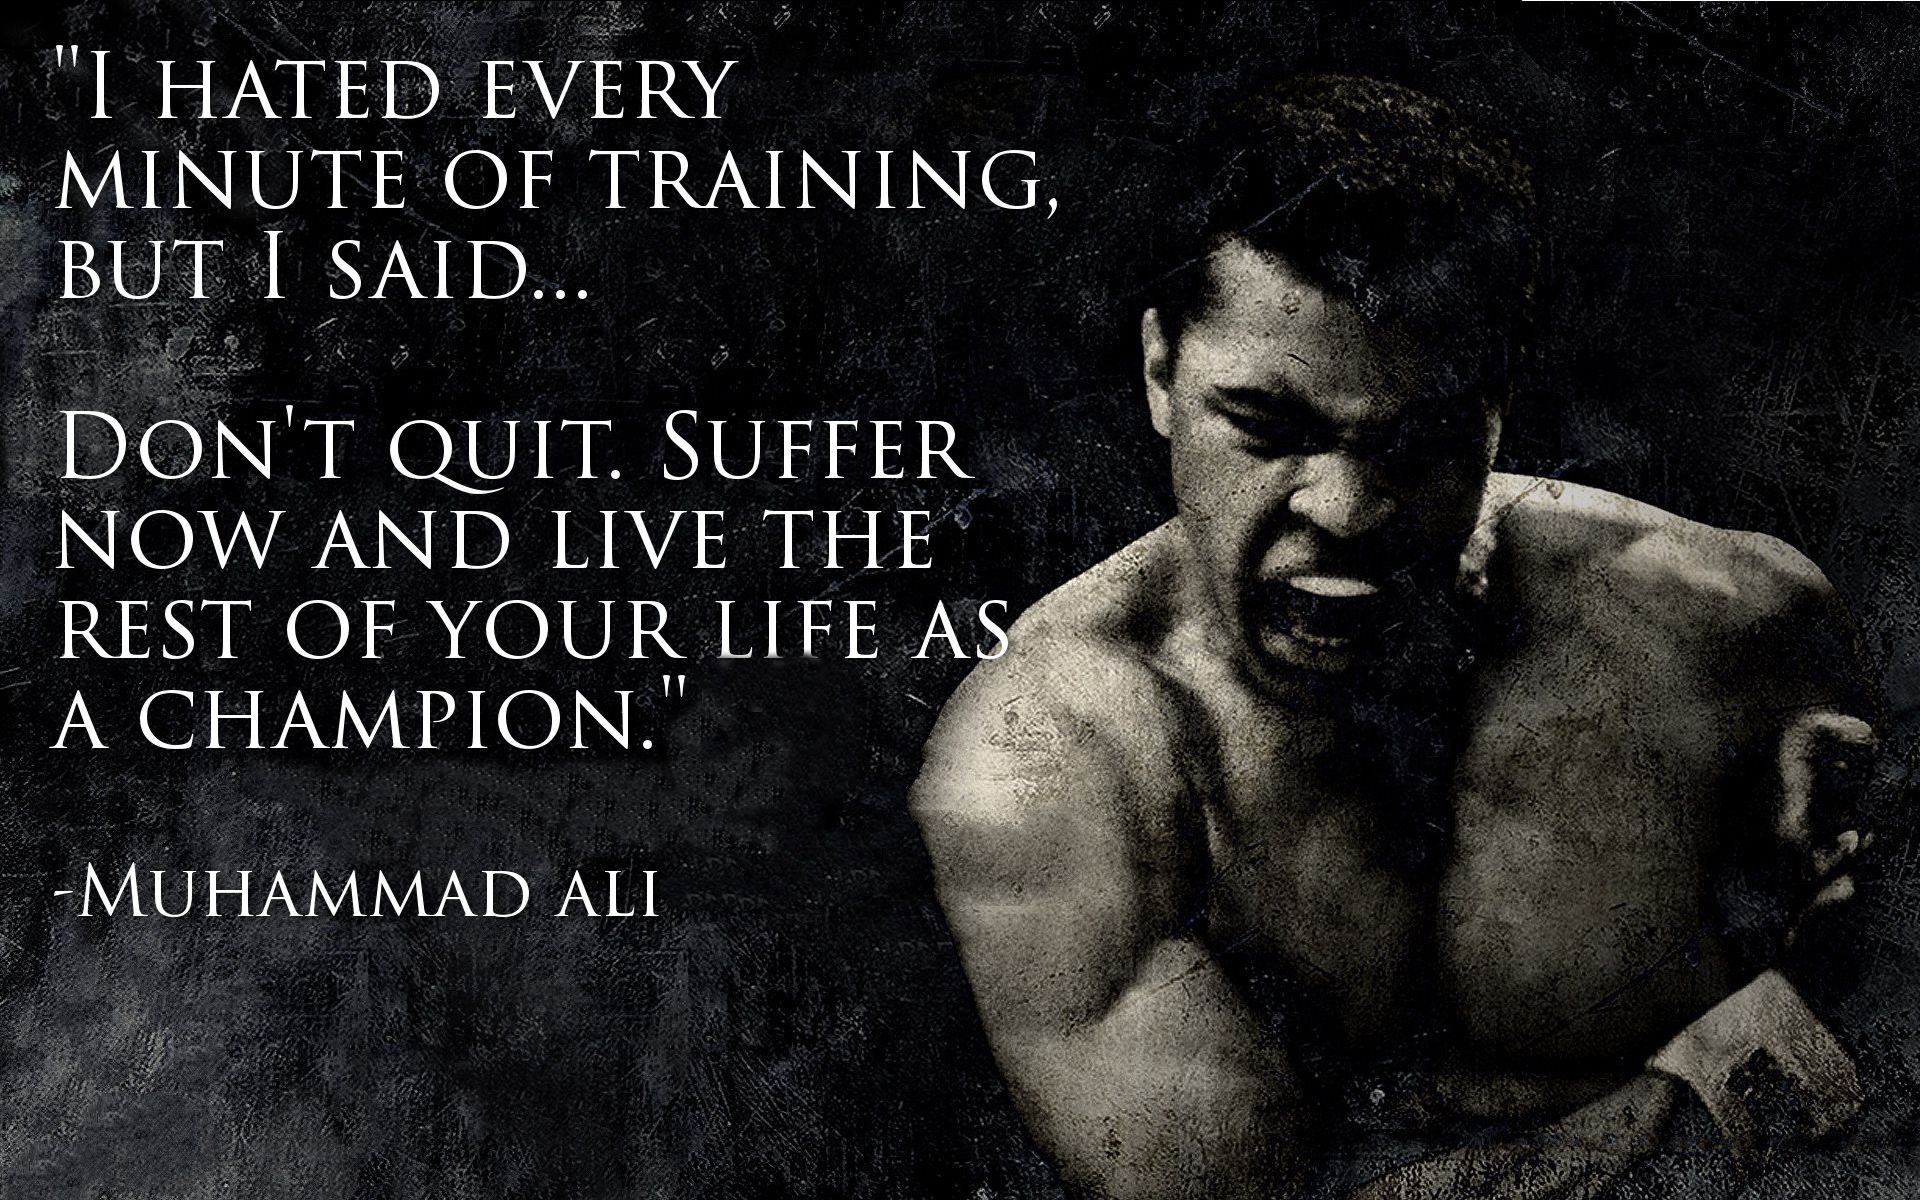 """I hated every minute of training, but I said… Don't quit. Suffer now and live the rest of your life as a champion."" – Muhammad Ali [1920 x 1200]"